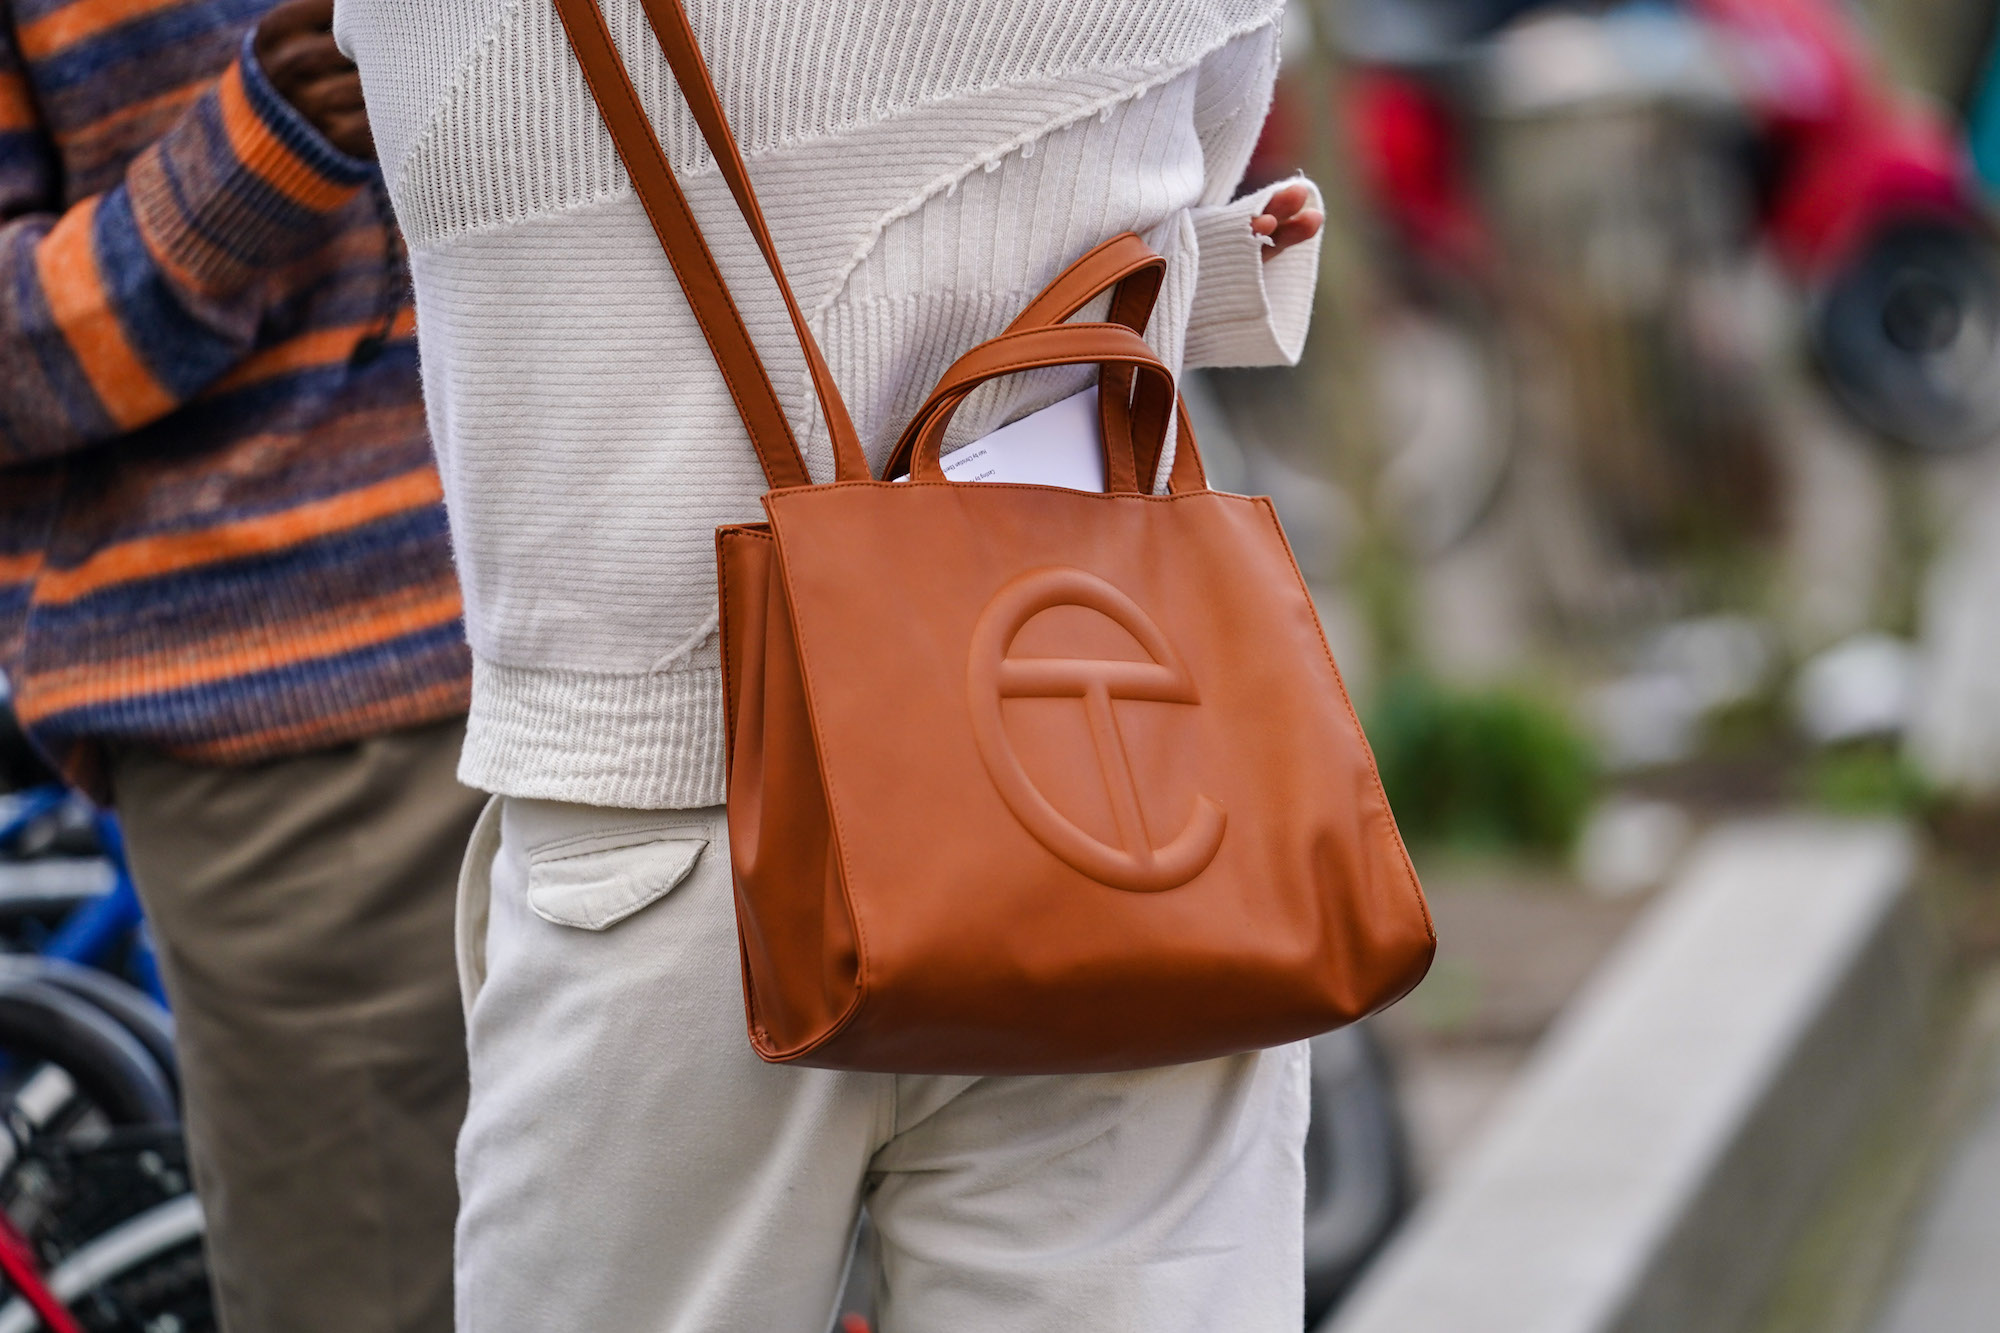 A brown Telfar bag